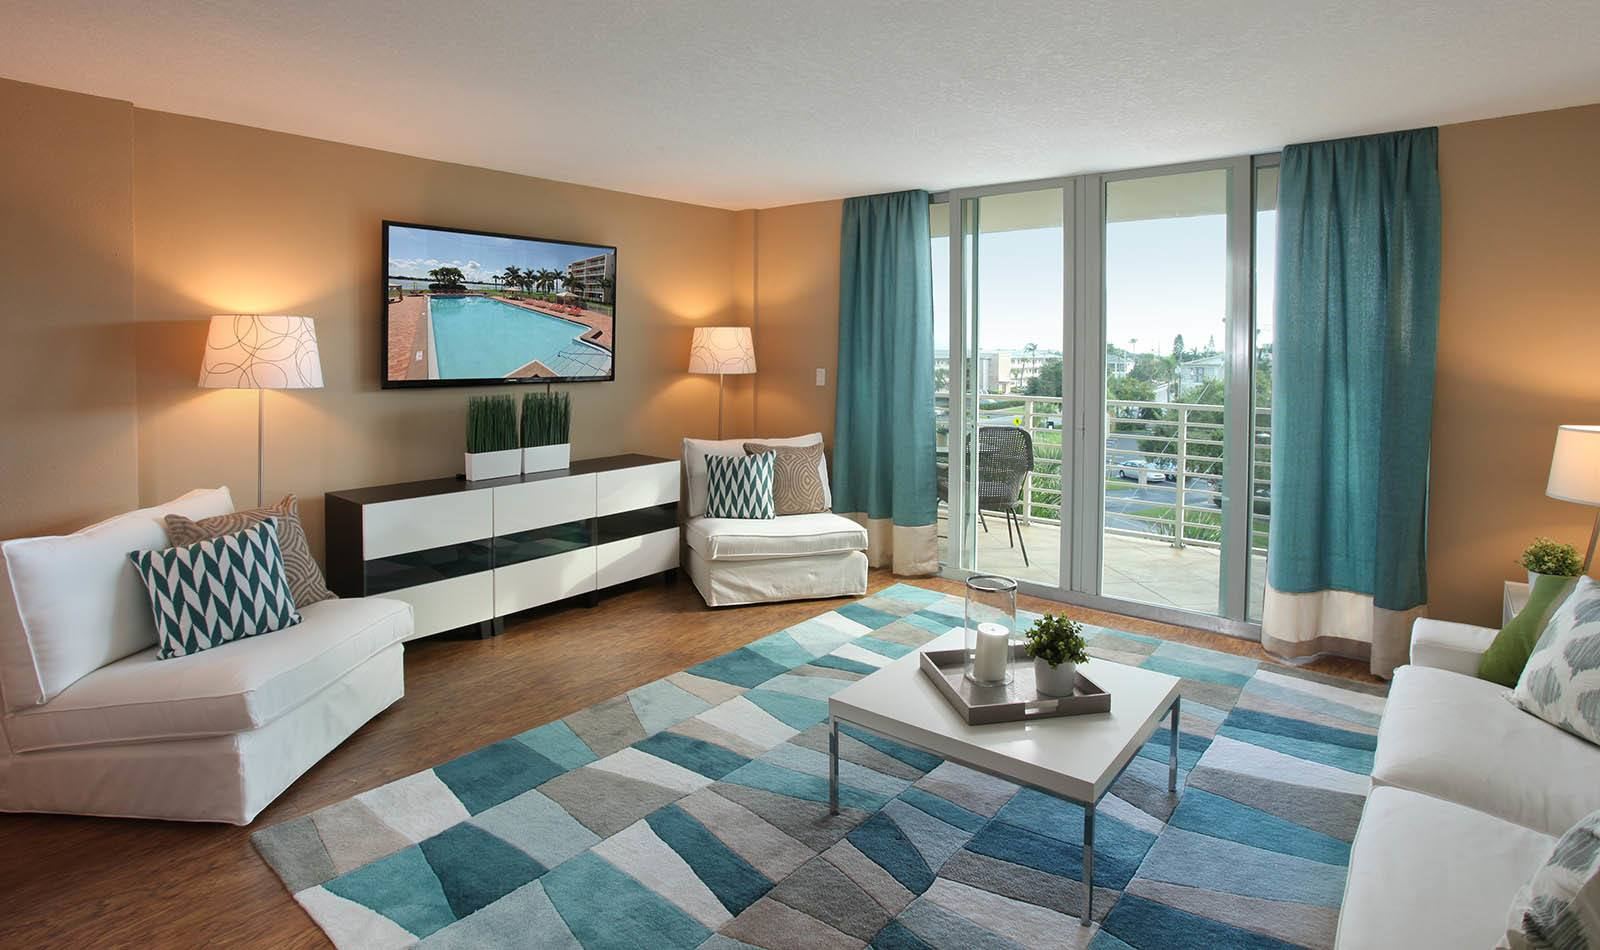 Living room at Waters Pointe Apartments in South Pasadena, FL